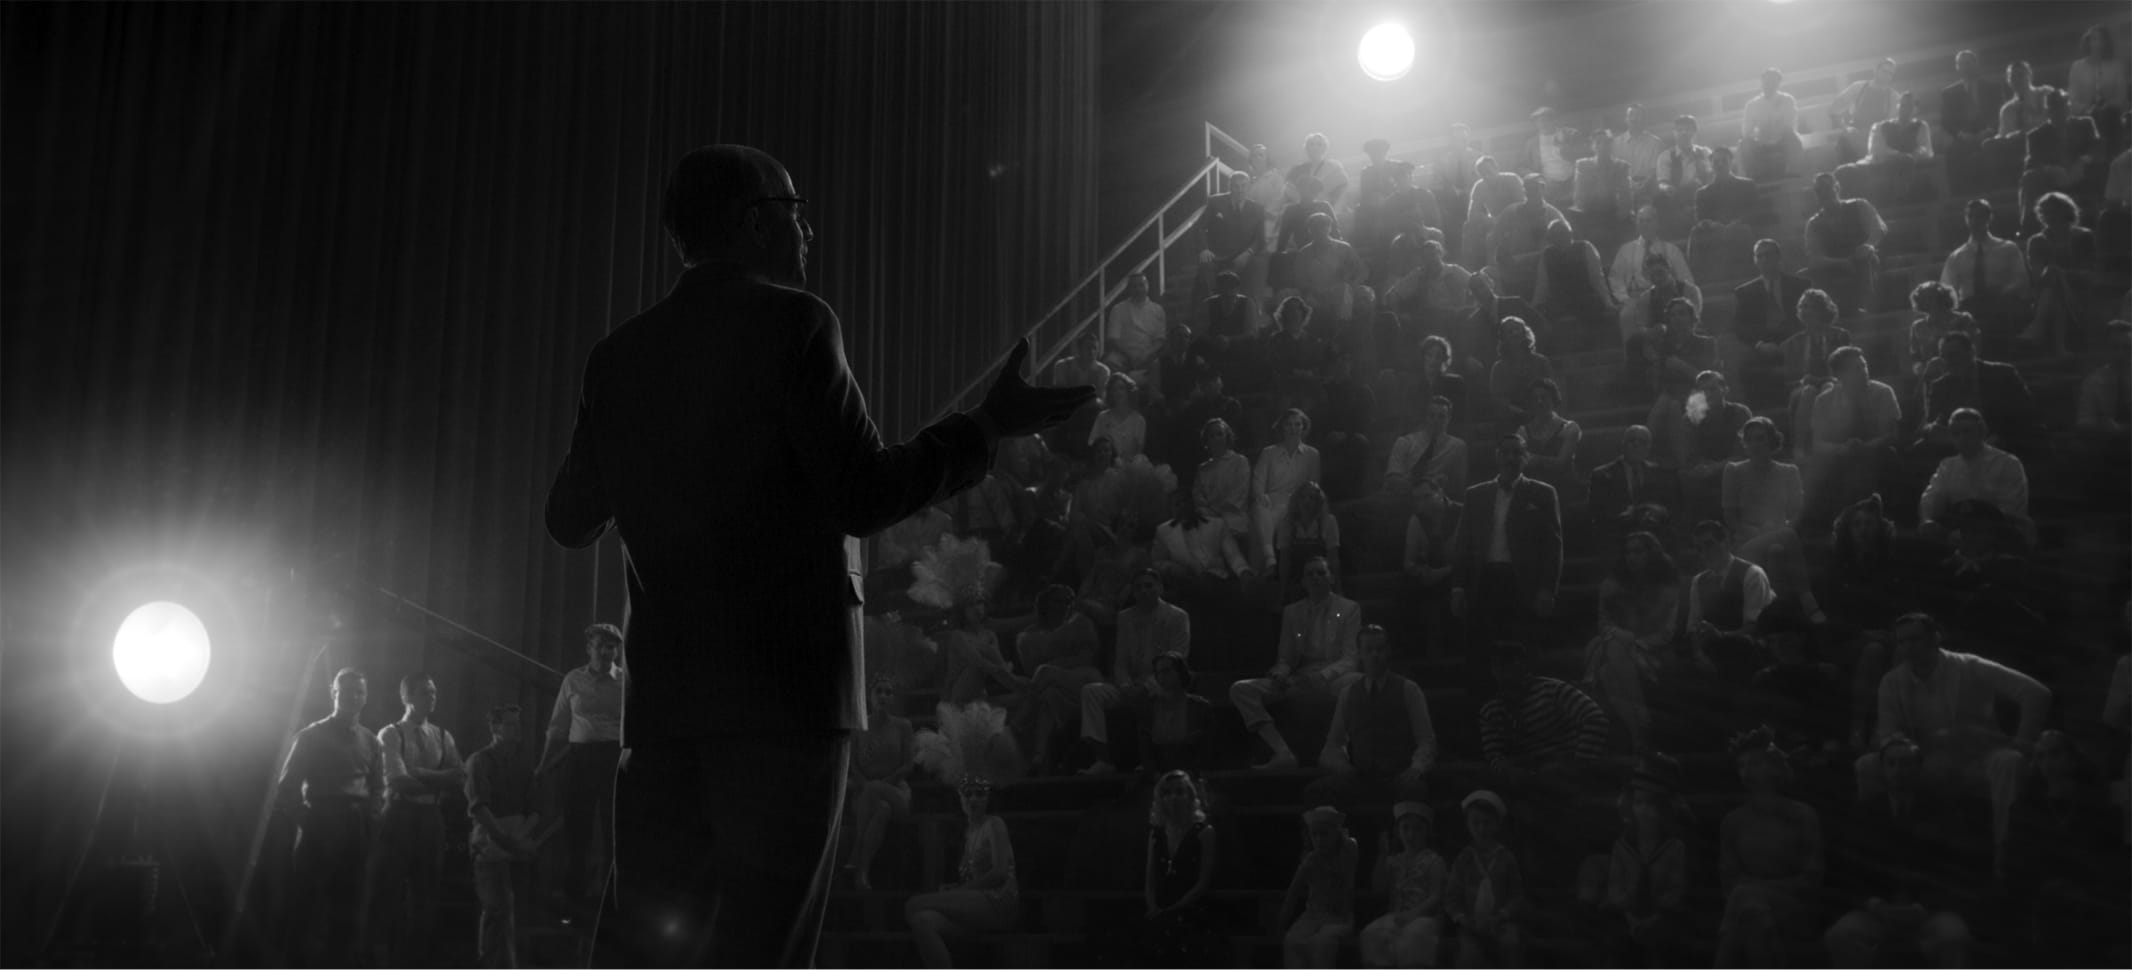 In a shot from the film, we see how the scene above translates to a black-and-white experience. The spotlights around the theater are like small suns.